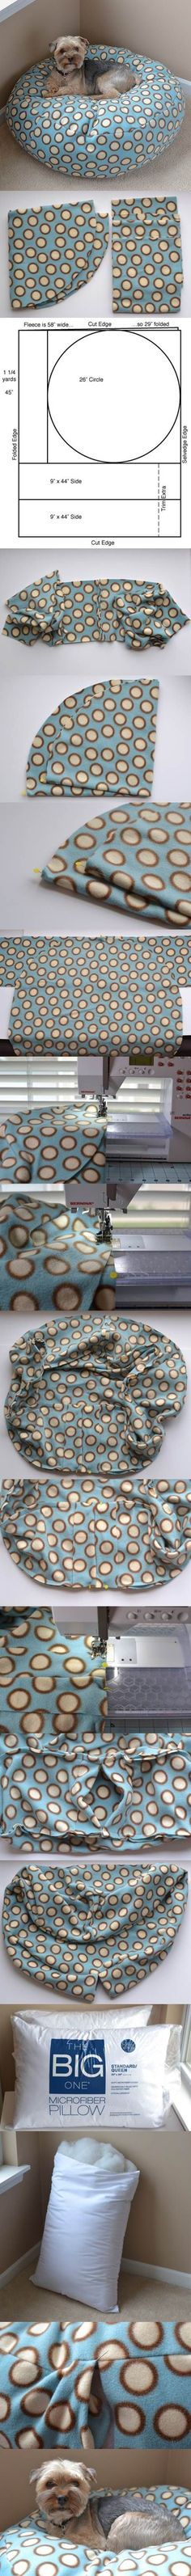 Most up-to-date Pics Sewing ideas for pets Popular 29 Epic DIY Dog Bed Ideas For Your Furry Friend Diy Dog Bed, Diy Bed, Dog Crafts, Animal Crafts, Sewing Crafts, Kids Crafts, Sewing Diy, Diy Pour Chien, Dog Items